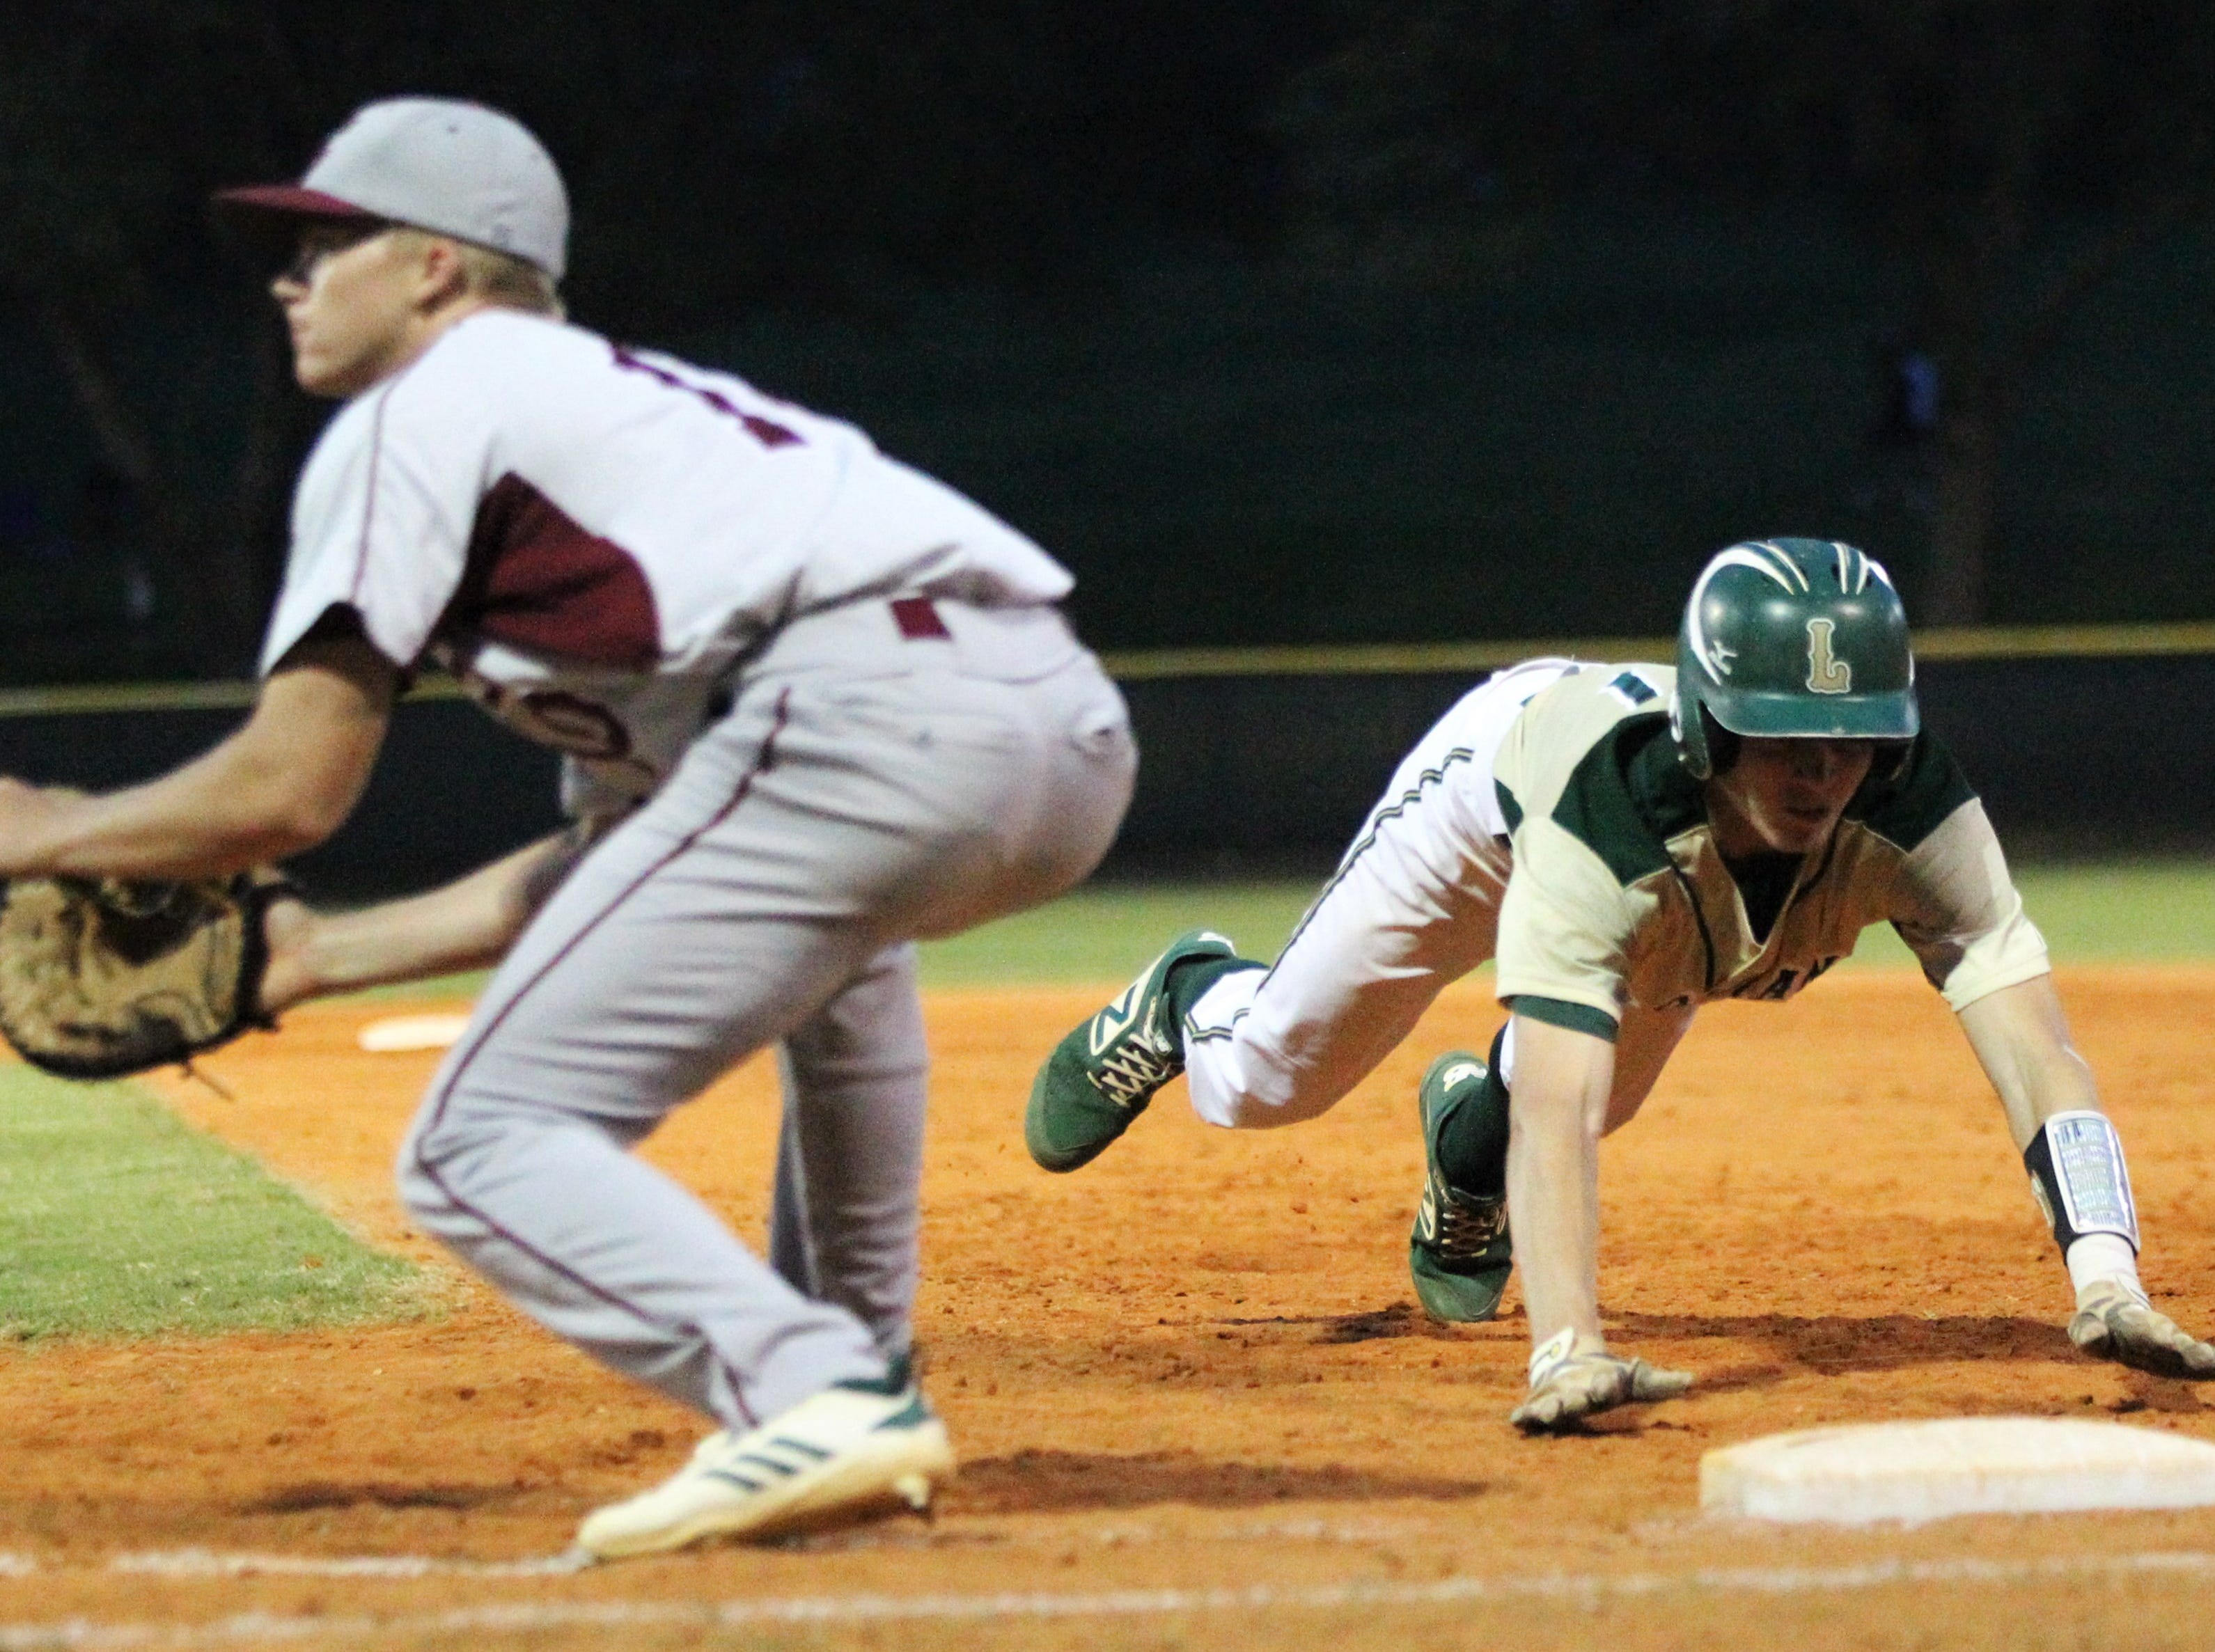 Lincoln senior Nick Standridge dives back into first on a pick-off attempt as Lincoln baseball beat Chiles 5-4  in 10 innings during a District 2-8A championship game on Thursday, May 9, 2019.